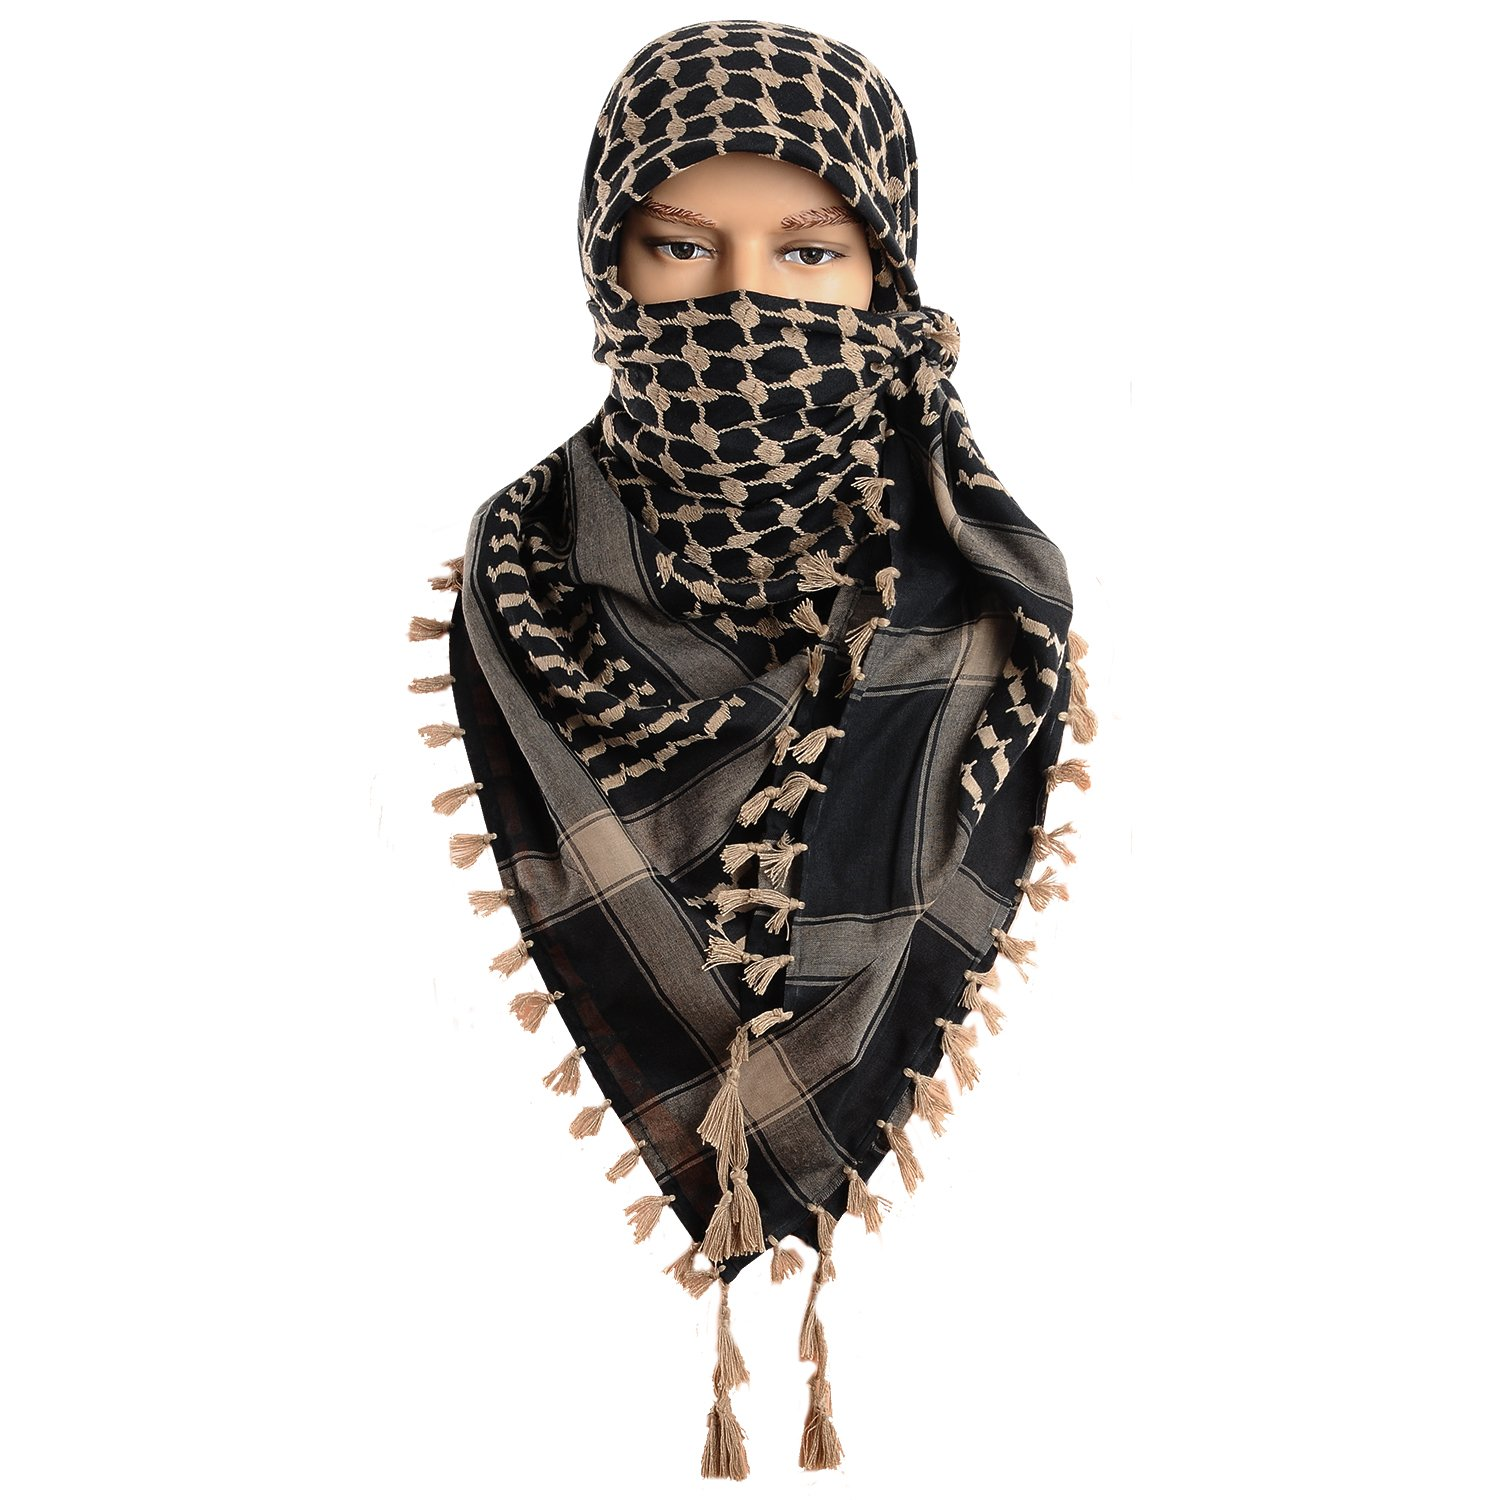 Micoop Large Size Premium Shemagh Scarf Arab Military Tactical Desert Scarf Wrap(48 by 48 inches) (Black Light Brown) by Micoop